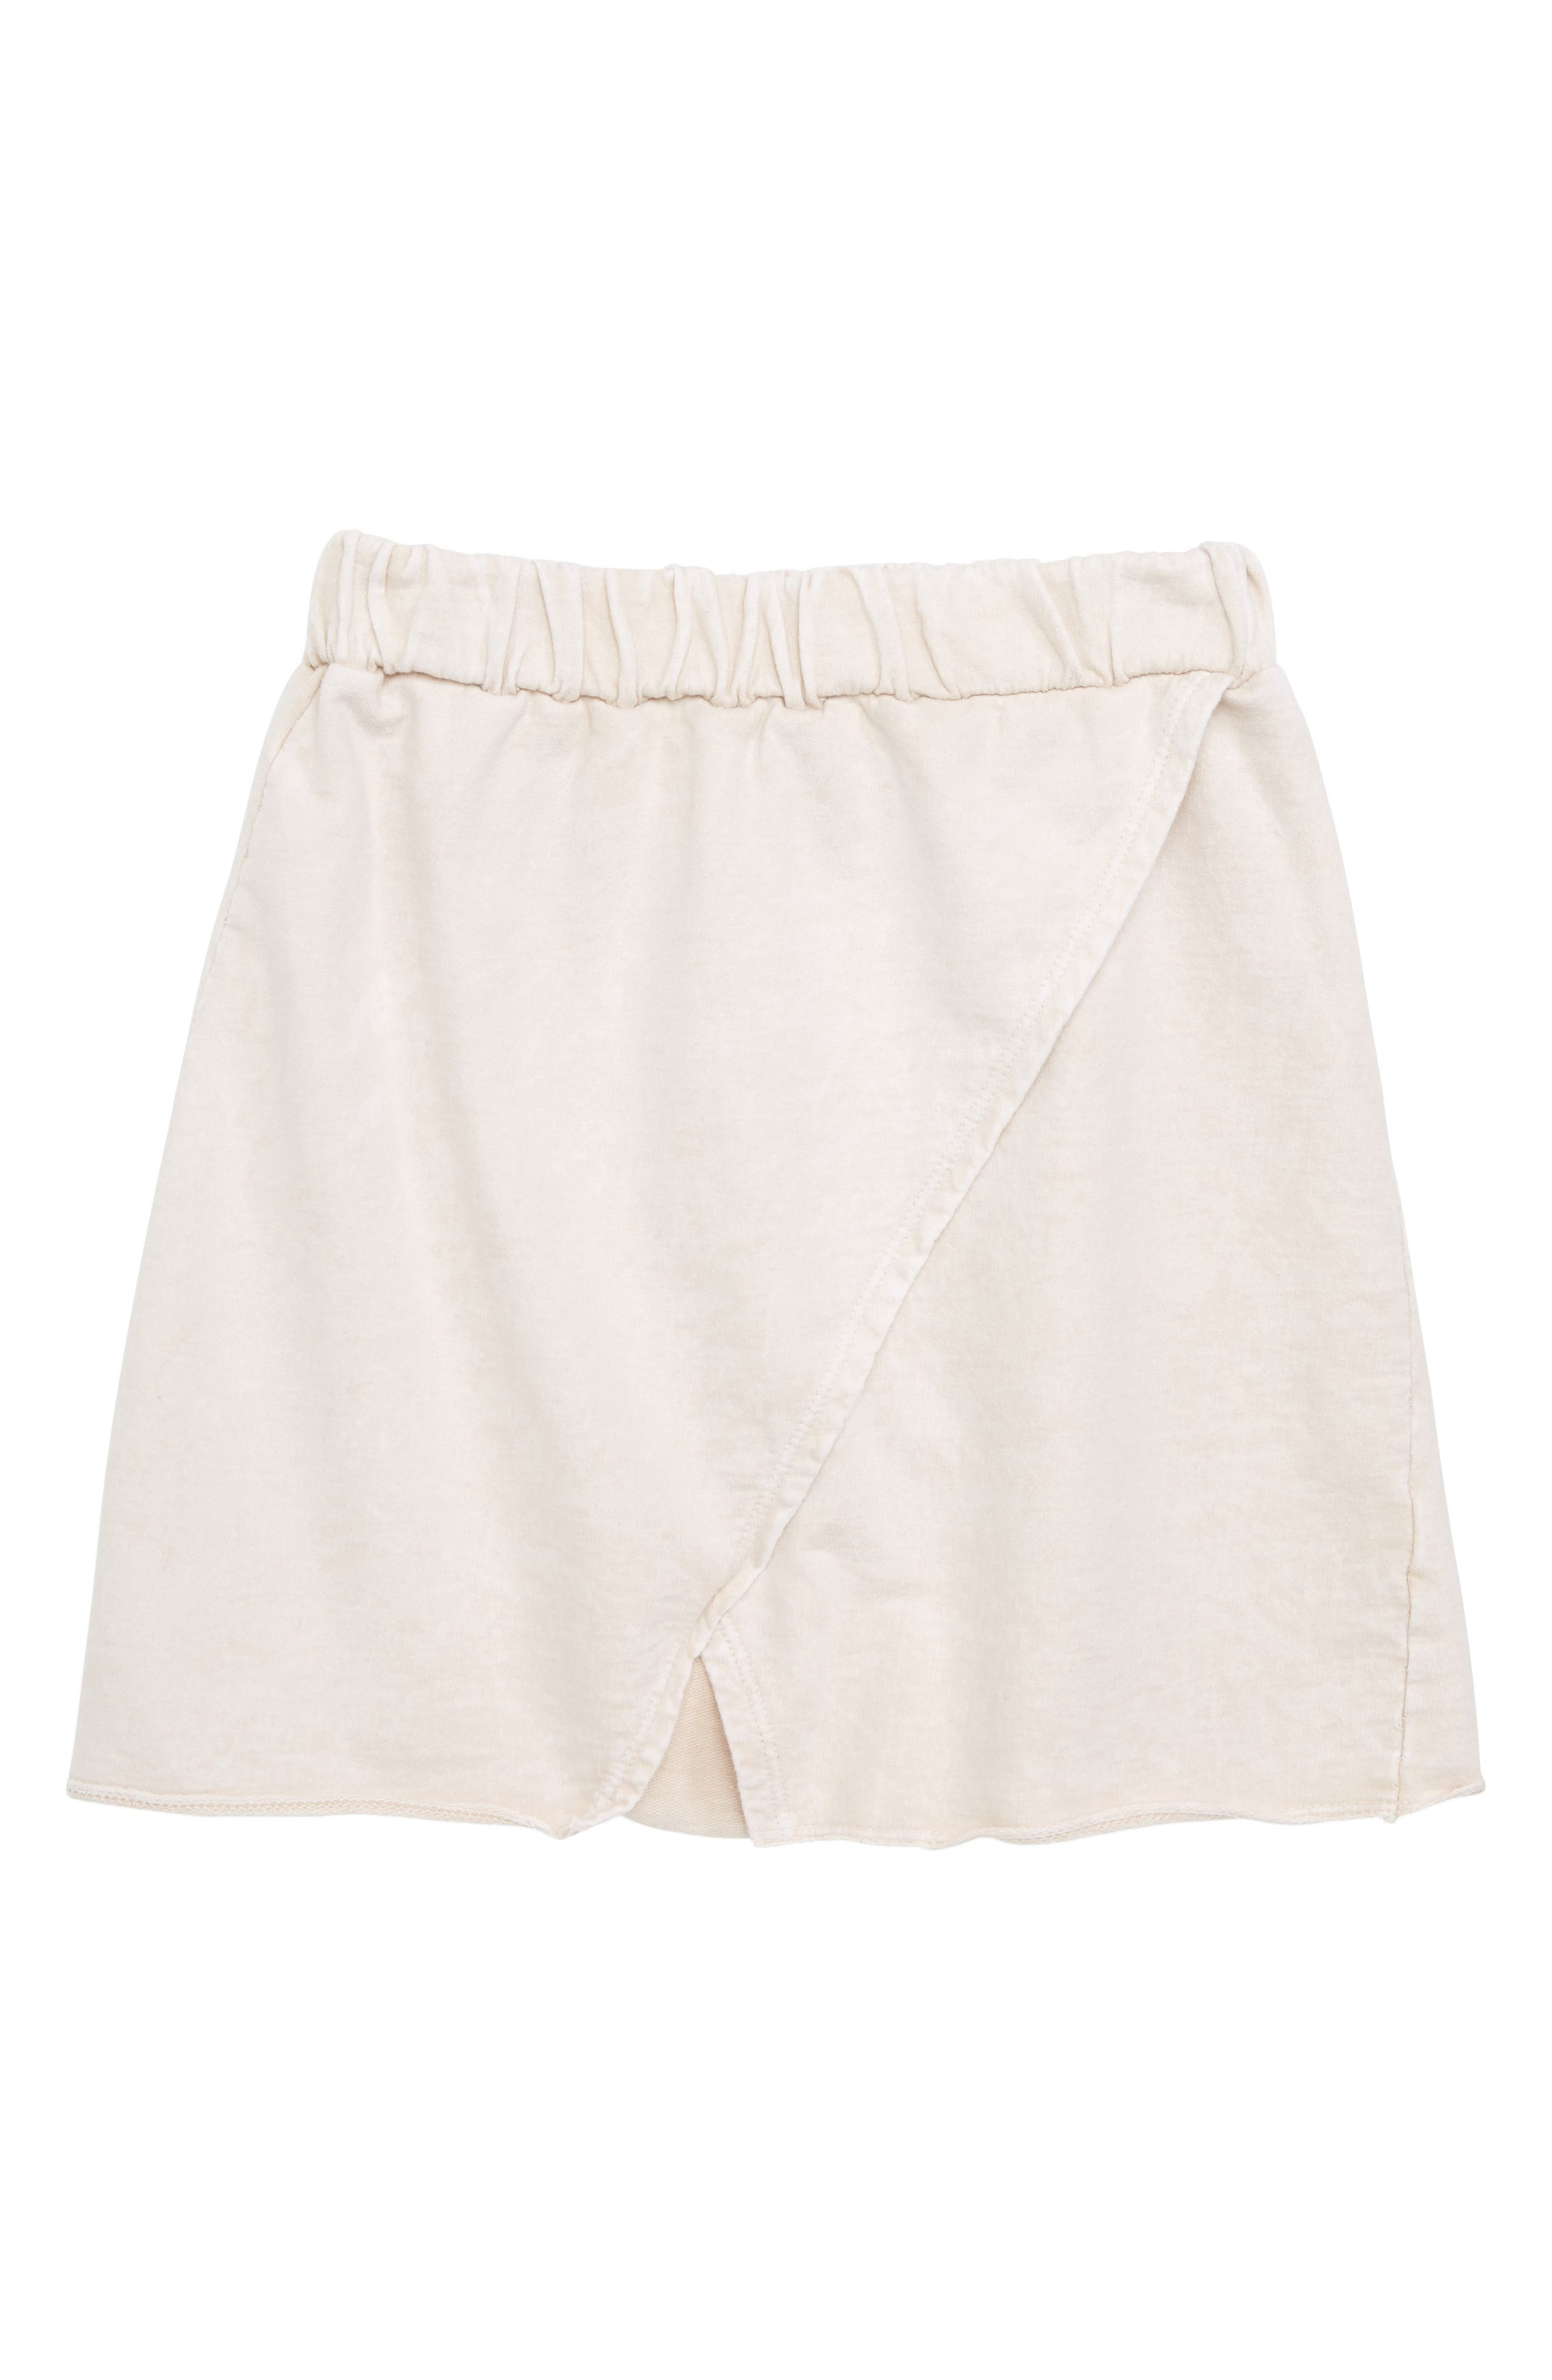 PPLA Spitz Knit Skirt (Big Girls)